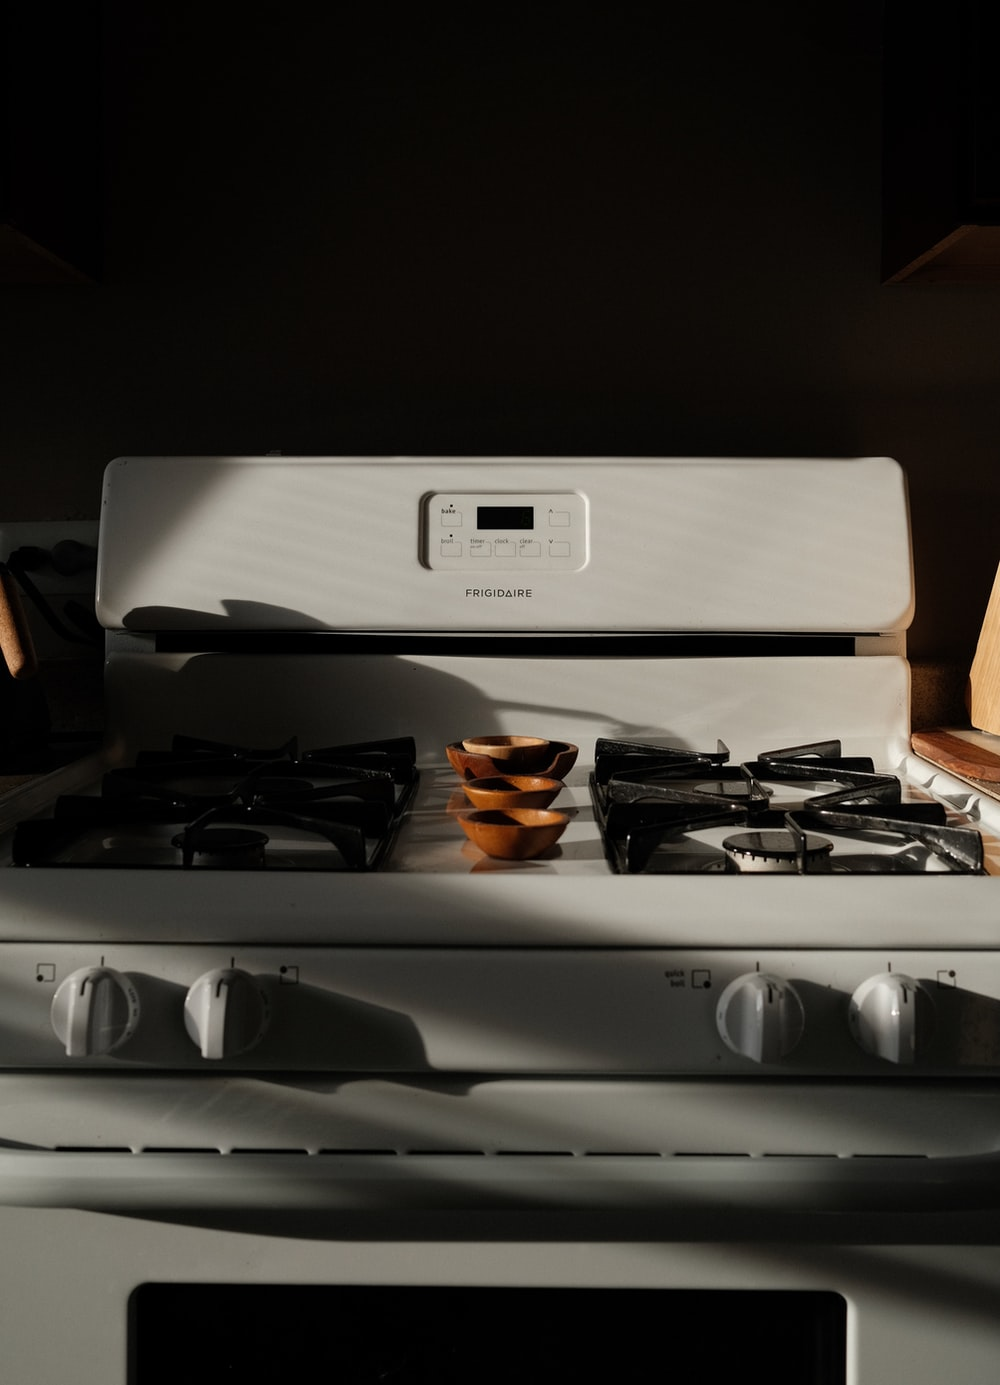 white and black gas stove